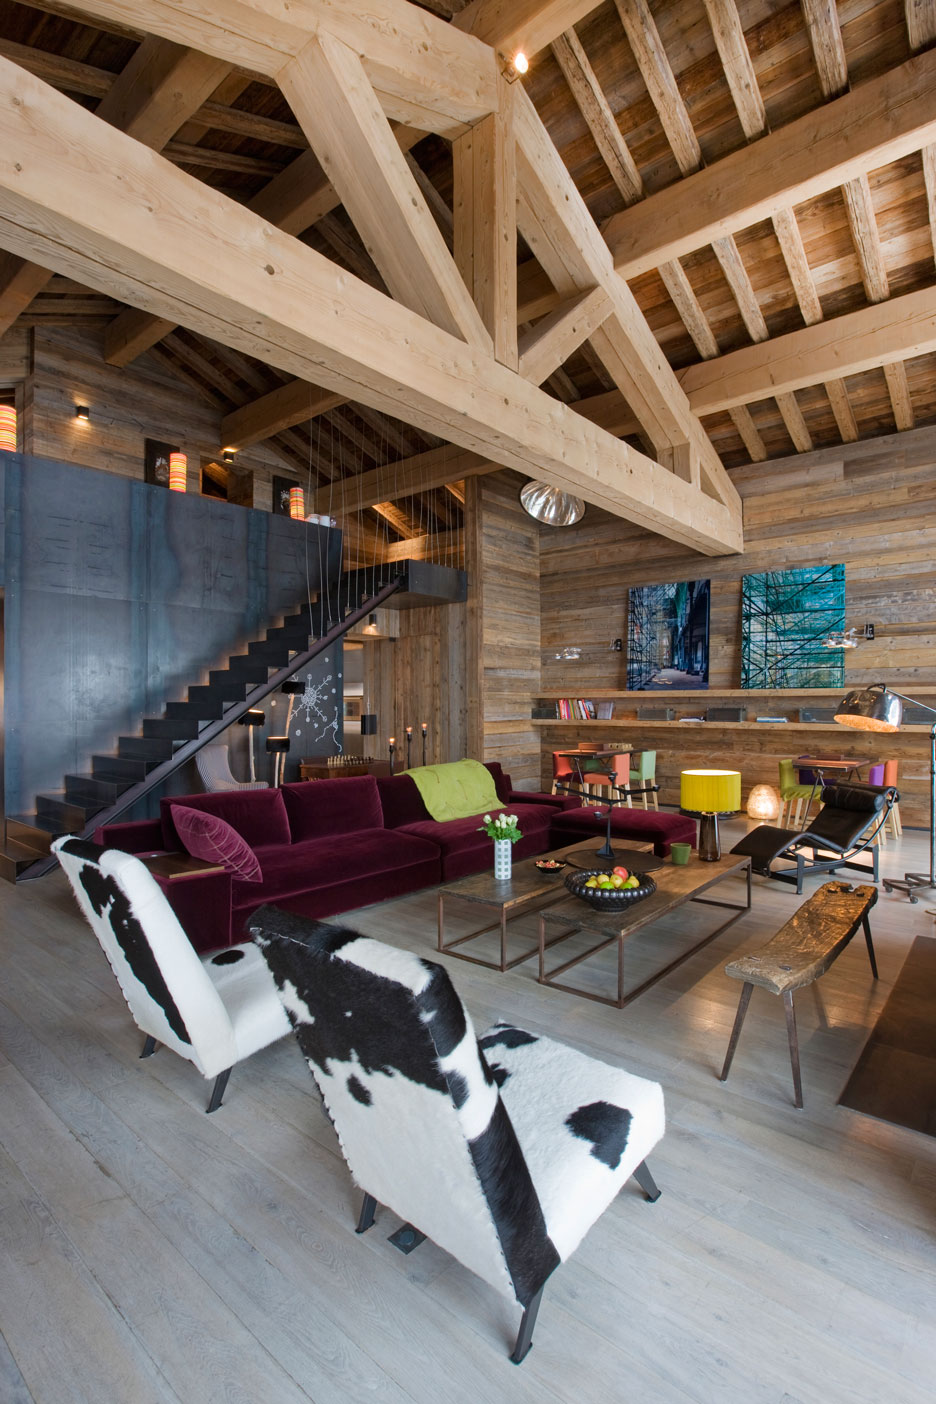 Chalet Grand Cerf - Jean michel arch Villot decoration Oddo and Gernez  Meribel - France